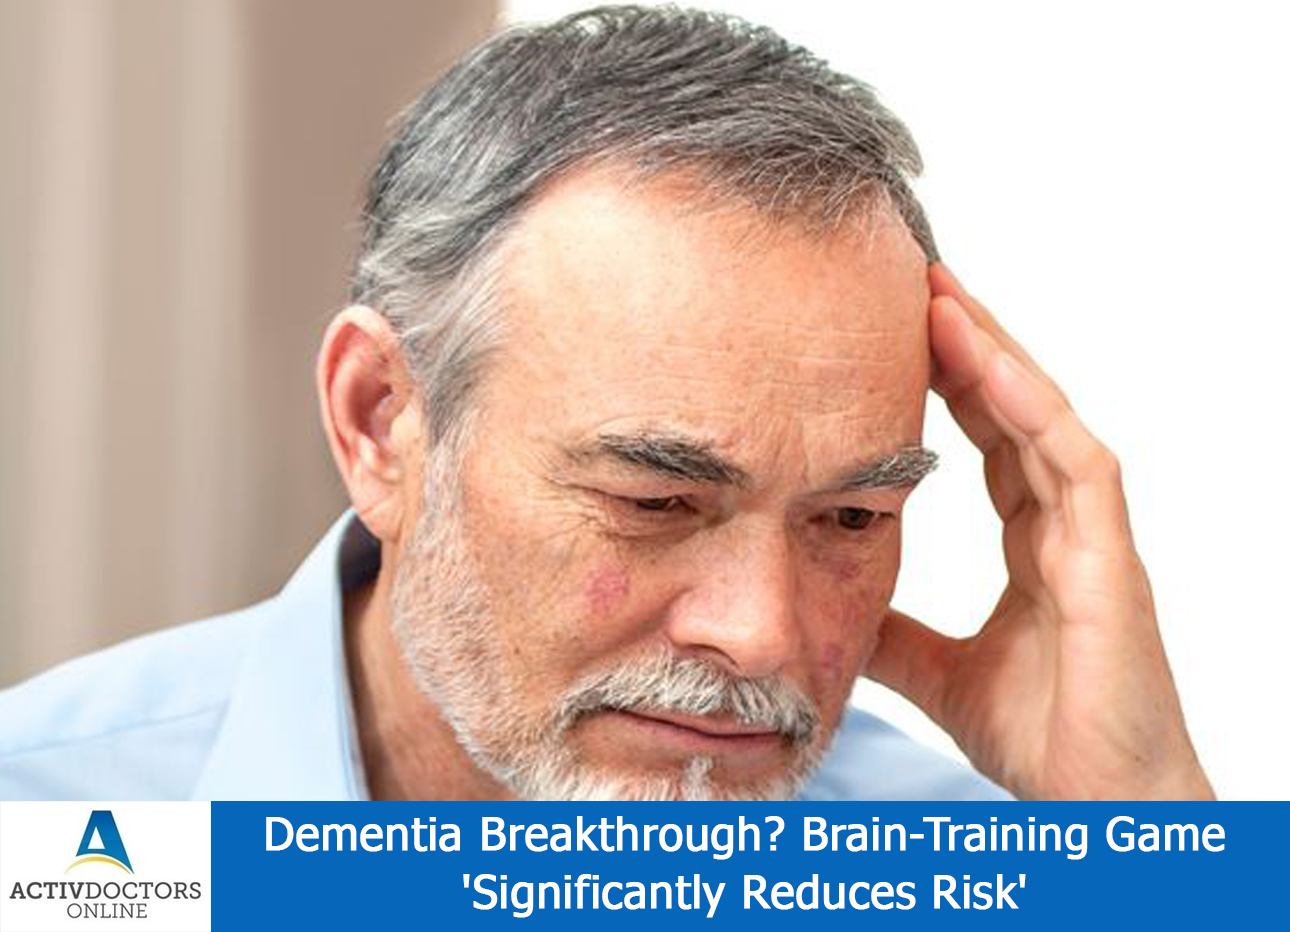 Dementia Breakthrough? Brain-Training Game 'Significantly Reduces Risk'